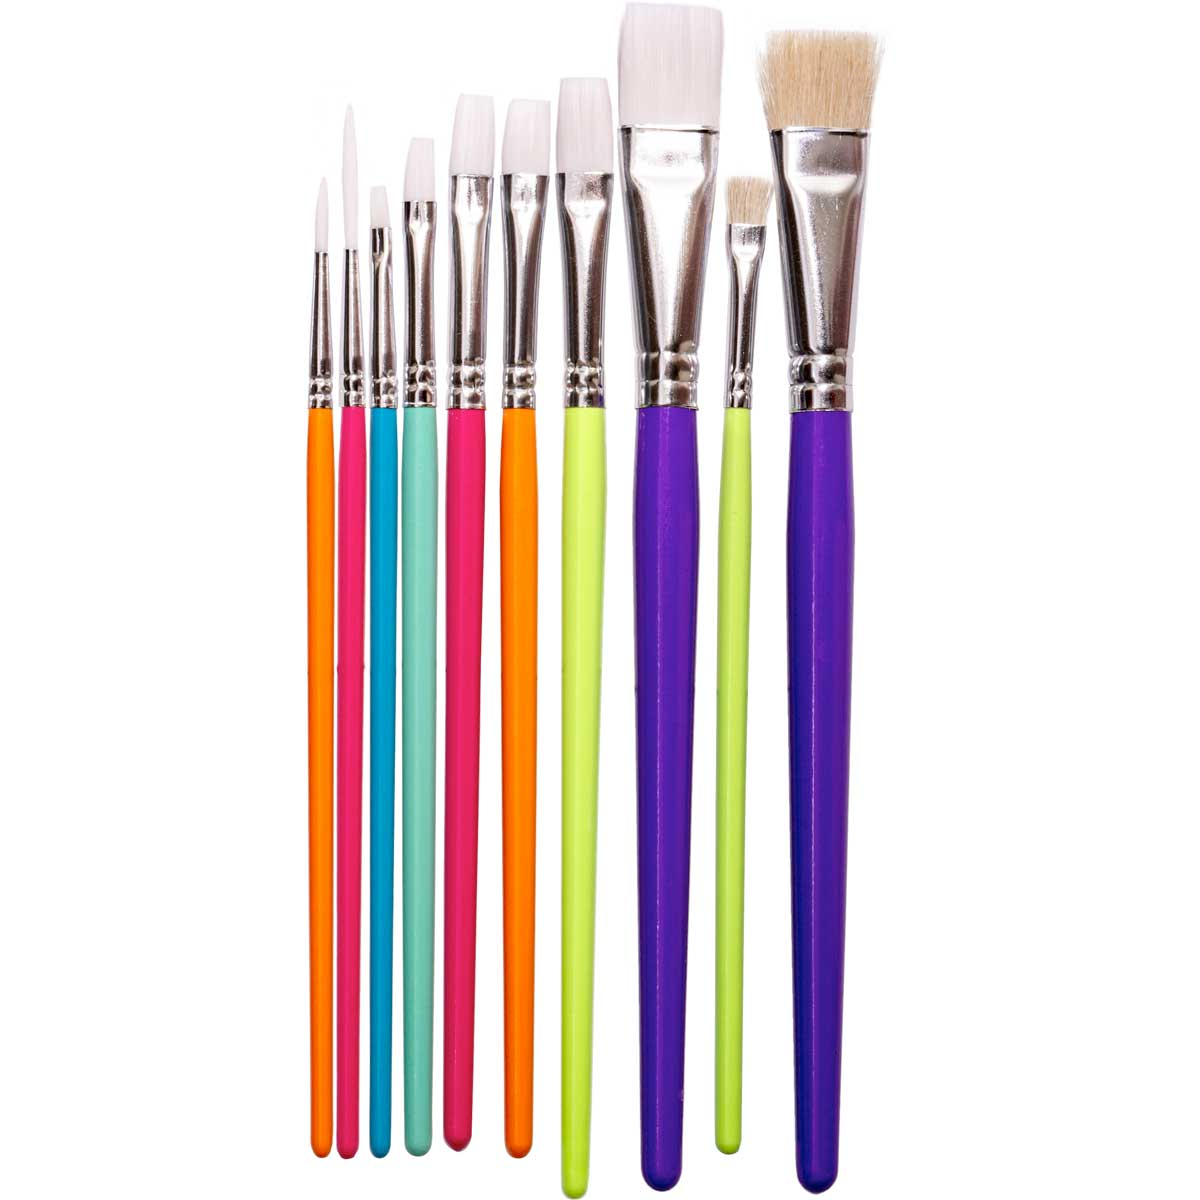 Plaid ® Color By Me™ Brush Sets - Artist Brushes, 10 pc.